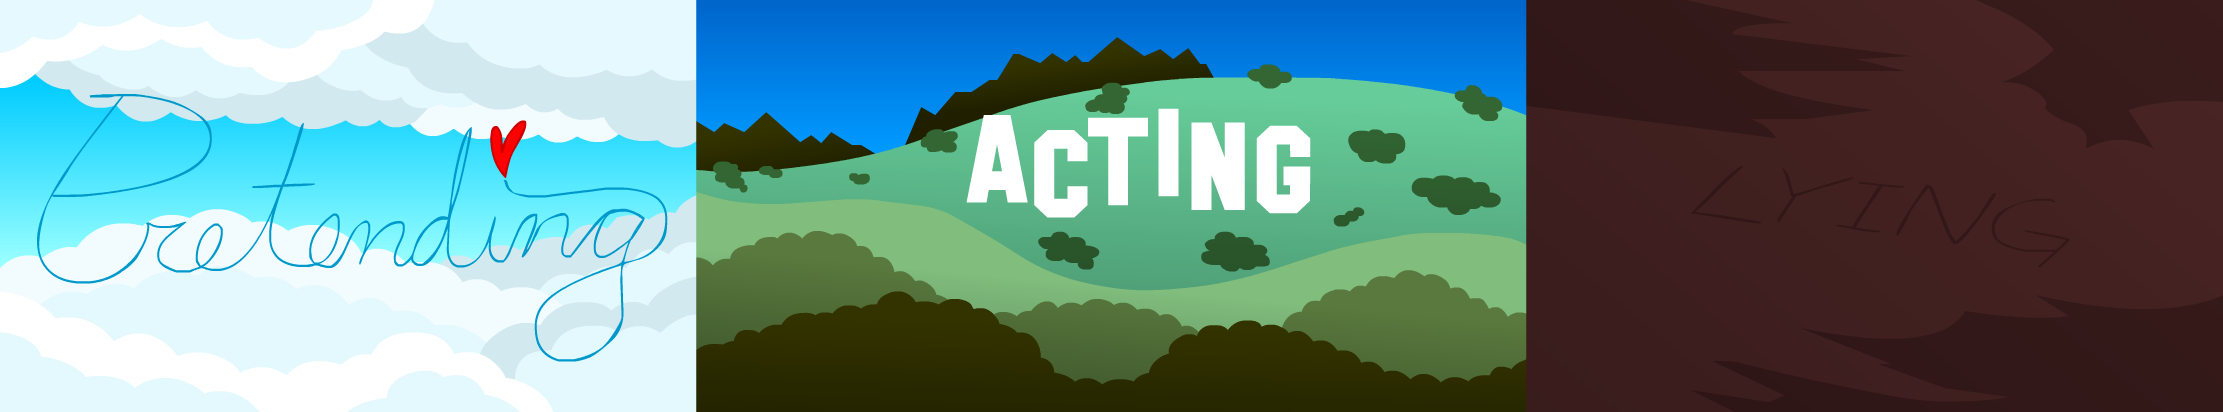 acting vs lying Act or lie acting and lying have some similarities, that are why people get confused with the usage of these two words many things.